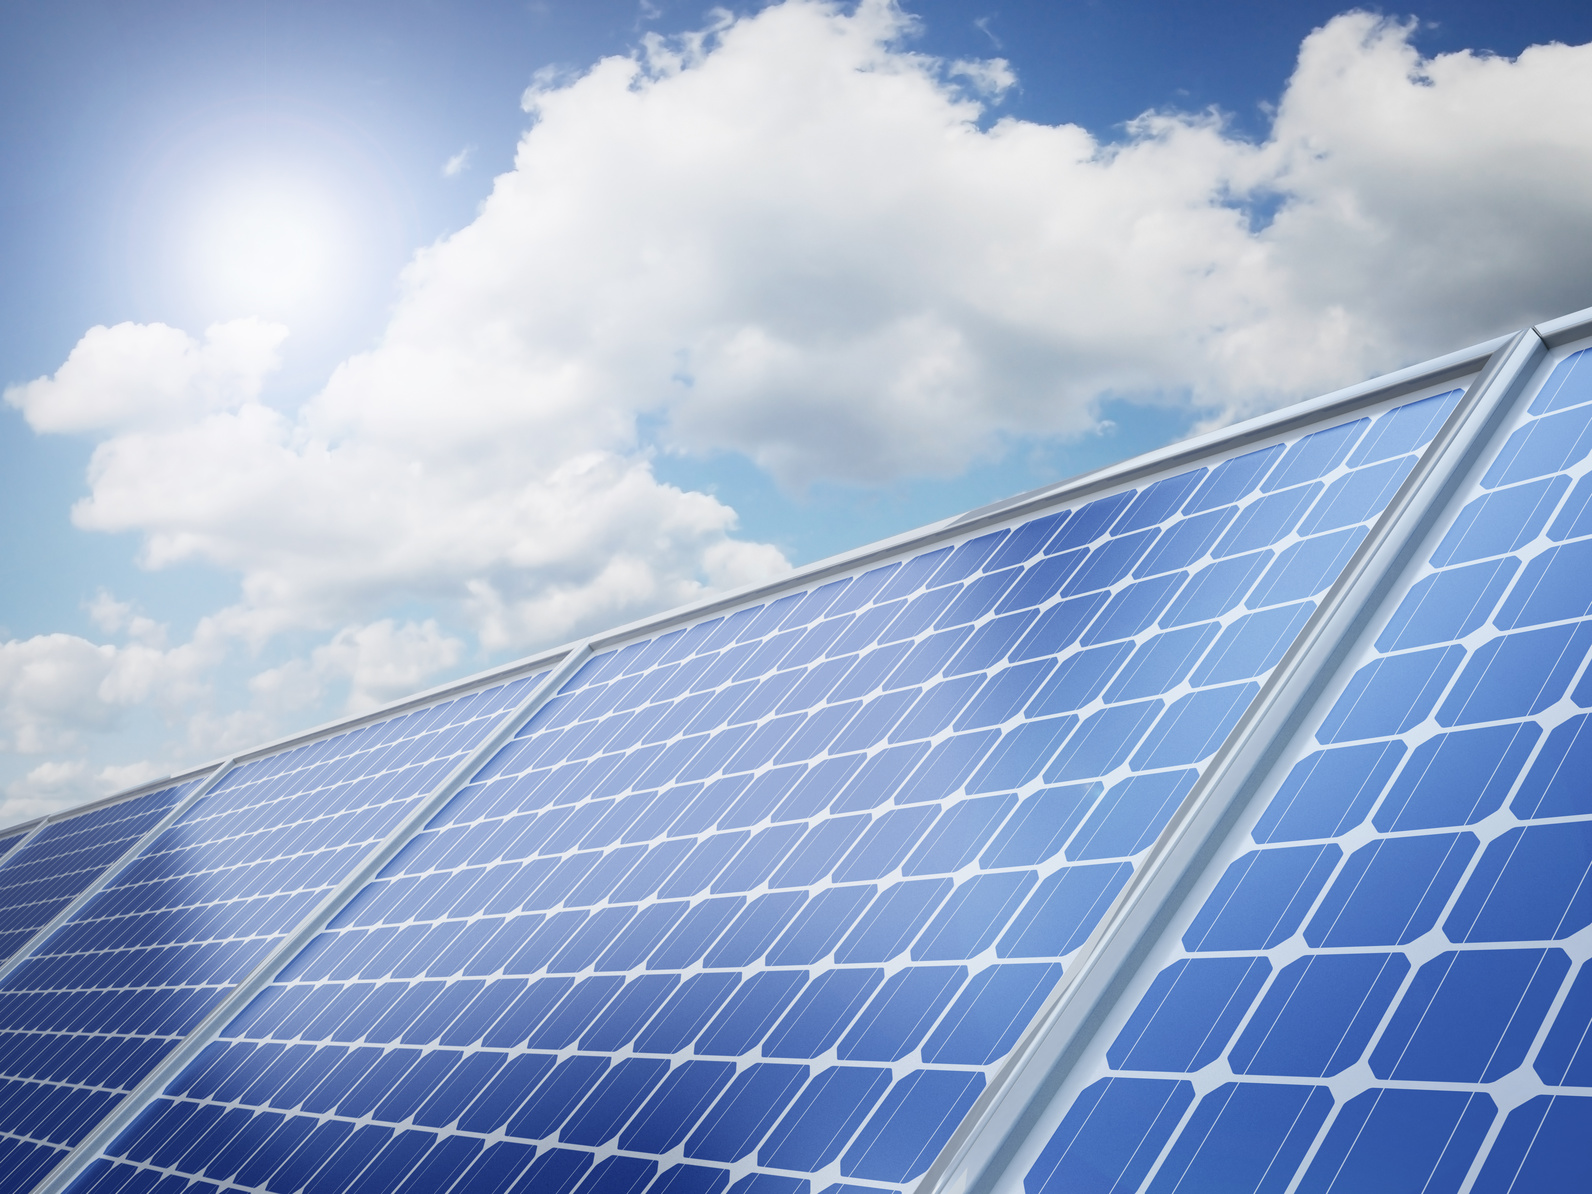 How Does The Solar Panel Make Electricity From Sunlight